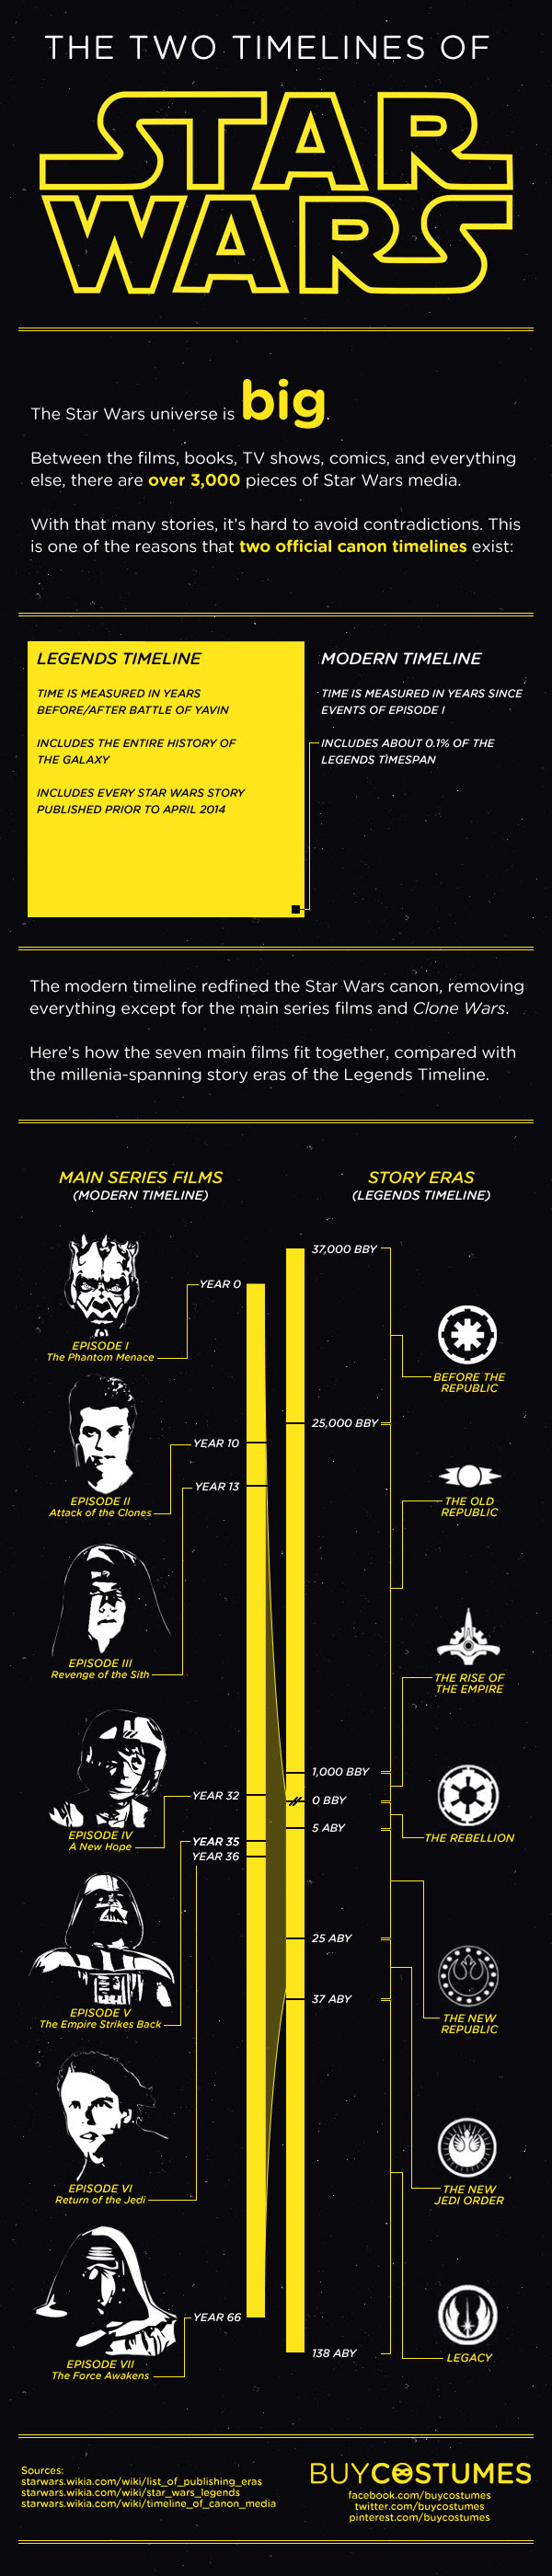 Infographic The Two Timelines Of Star Wars Halloween Costume Ideas